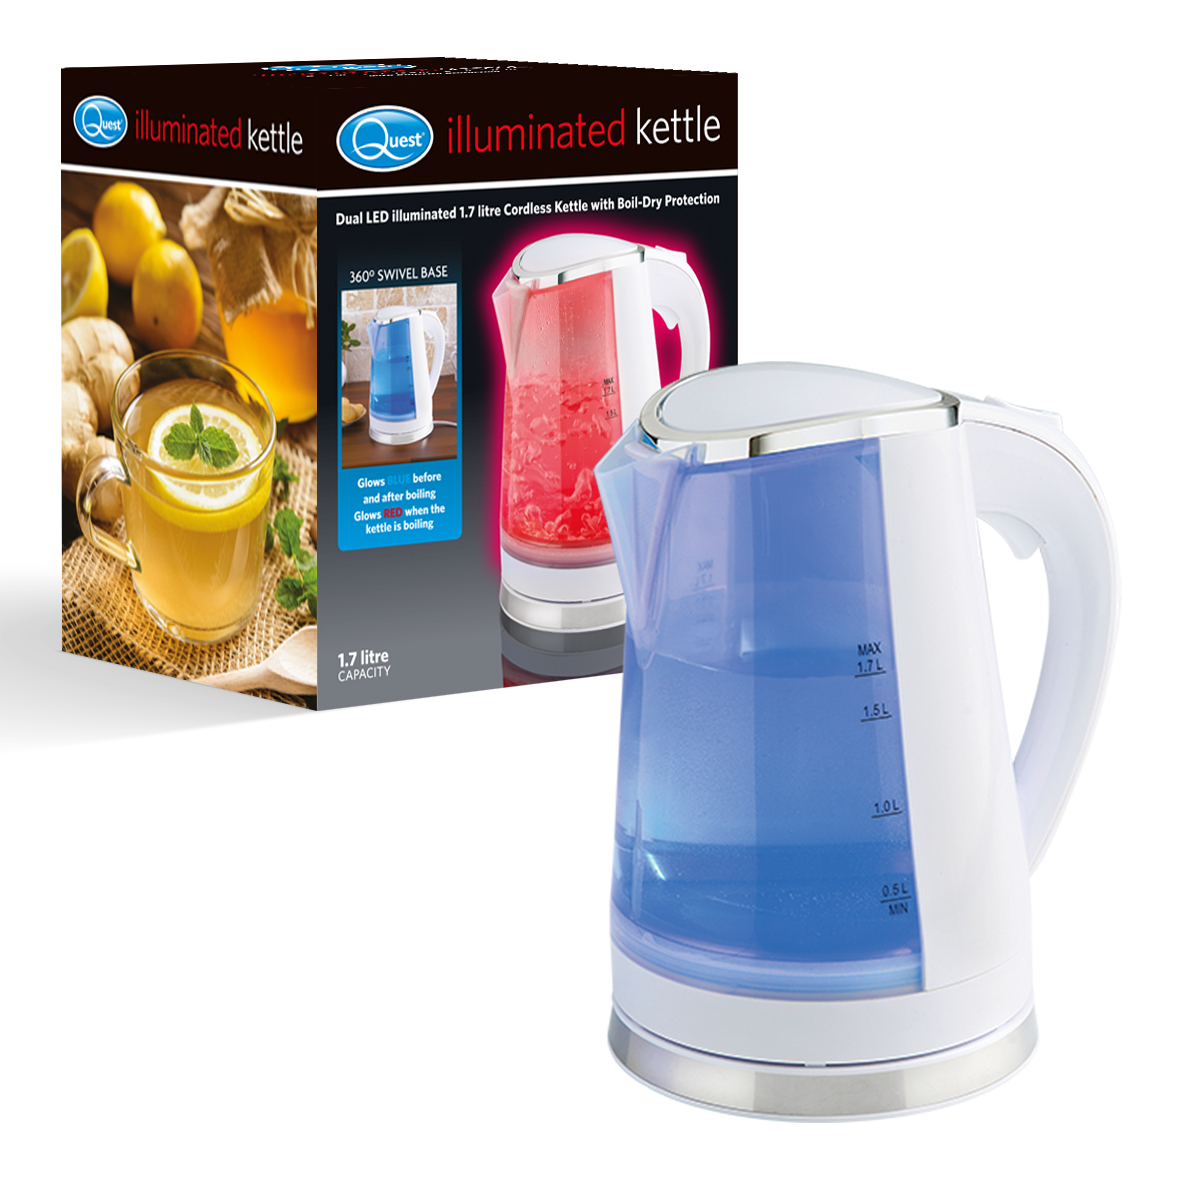 Black Dual LED Illuminated Kettle and box (white)